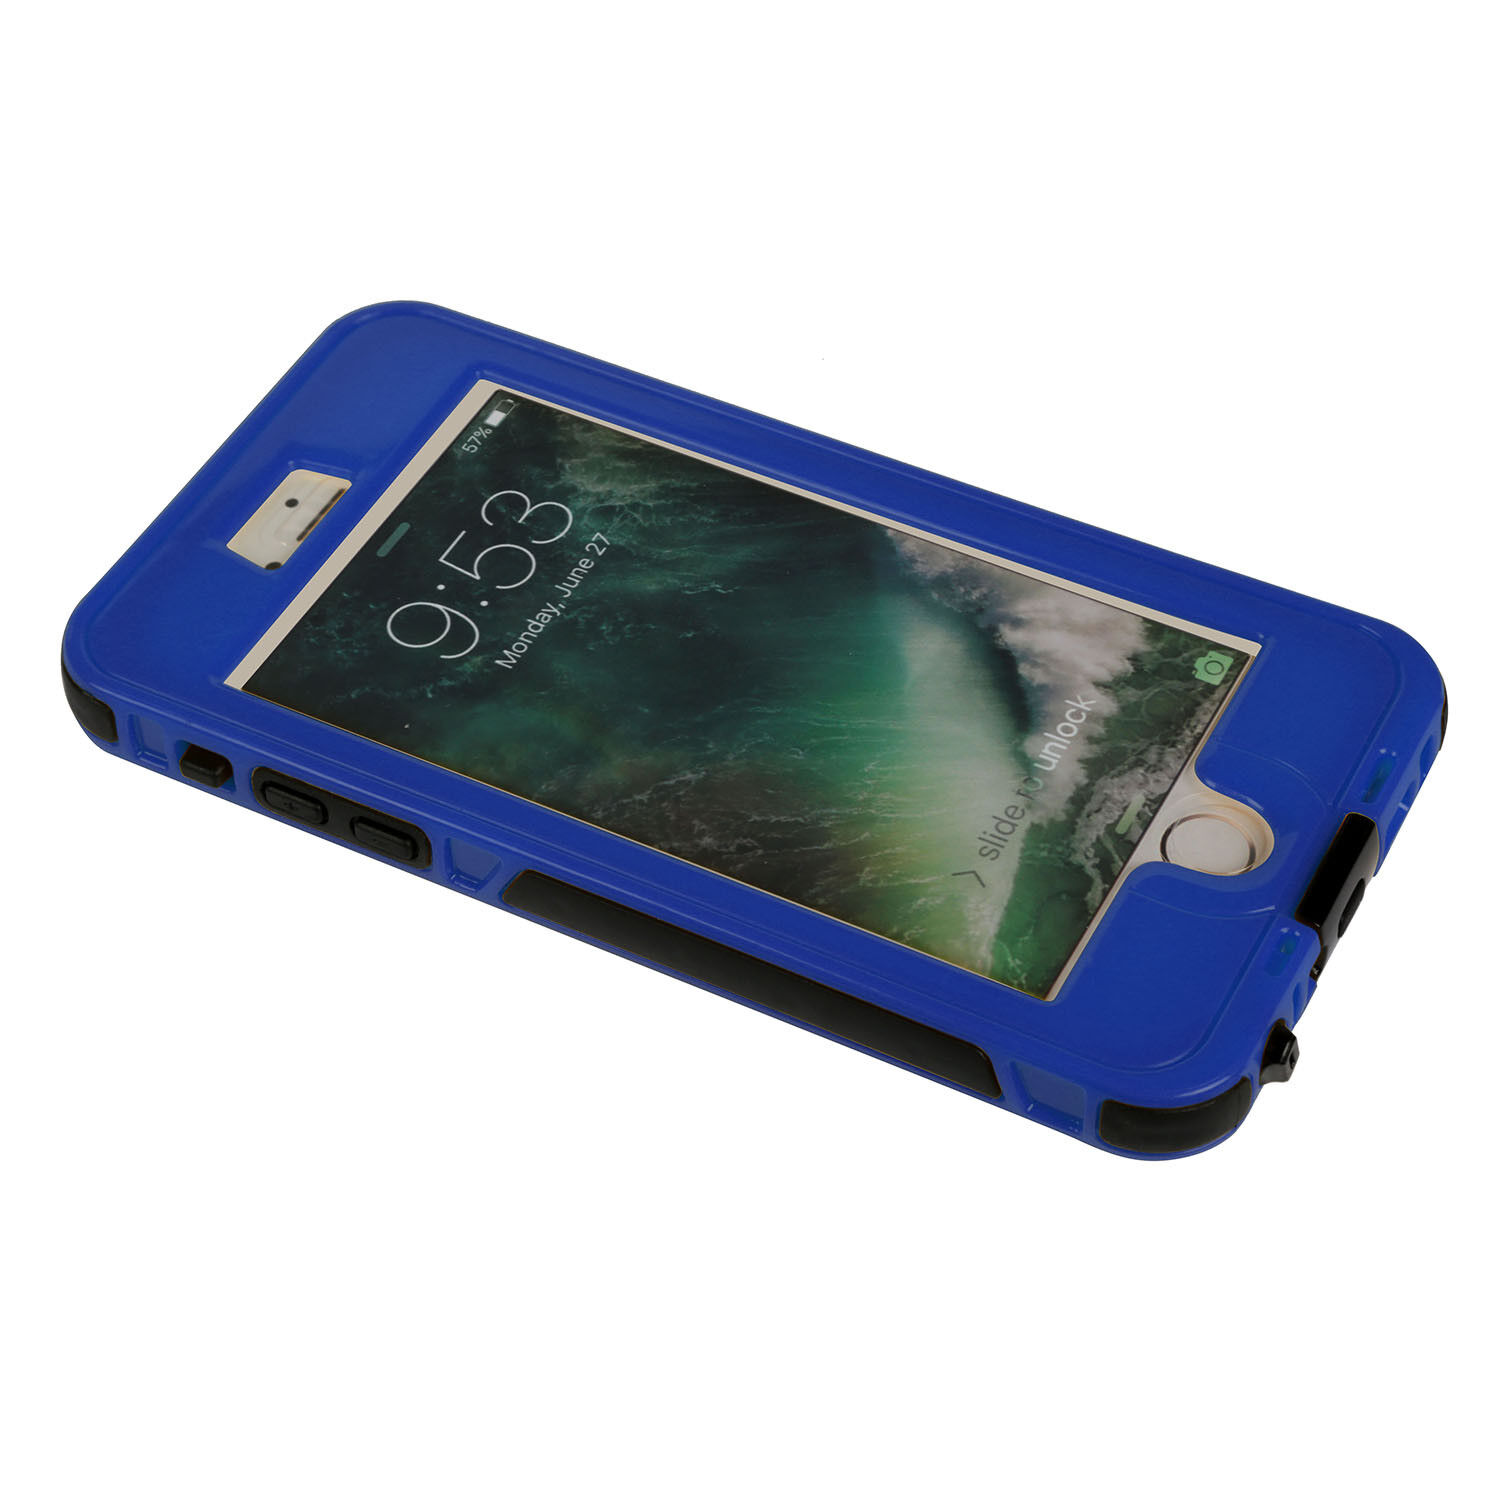 Waterproof Shockproof Dirt Proof Durable Hard Case Cover For iPhone 6 7 Plus 6s